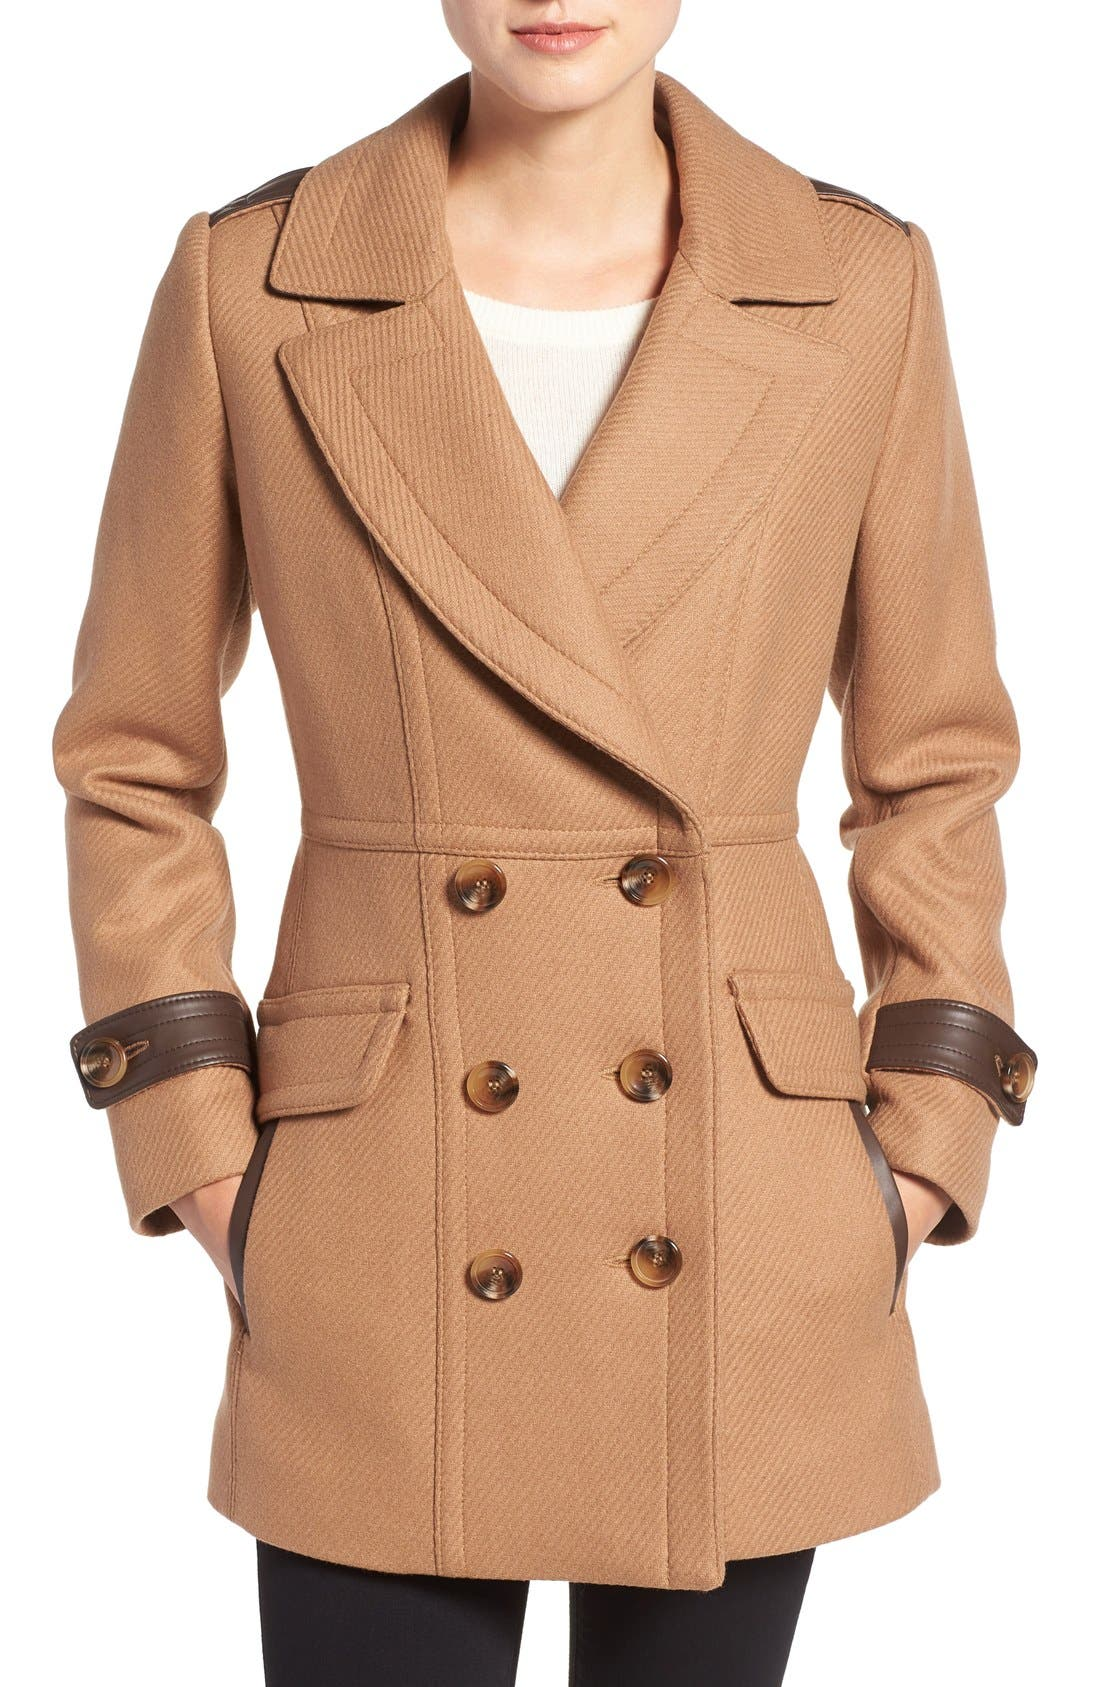 'Chloe' Wool Blend Peacoat,                             Main thumbnail 1, color,                             Camel